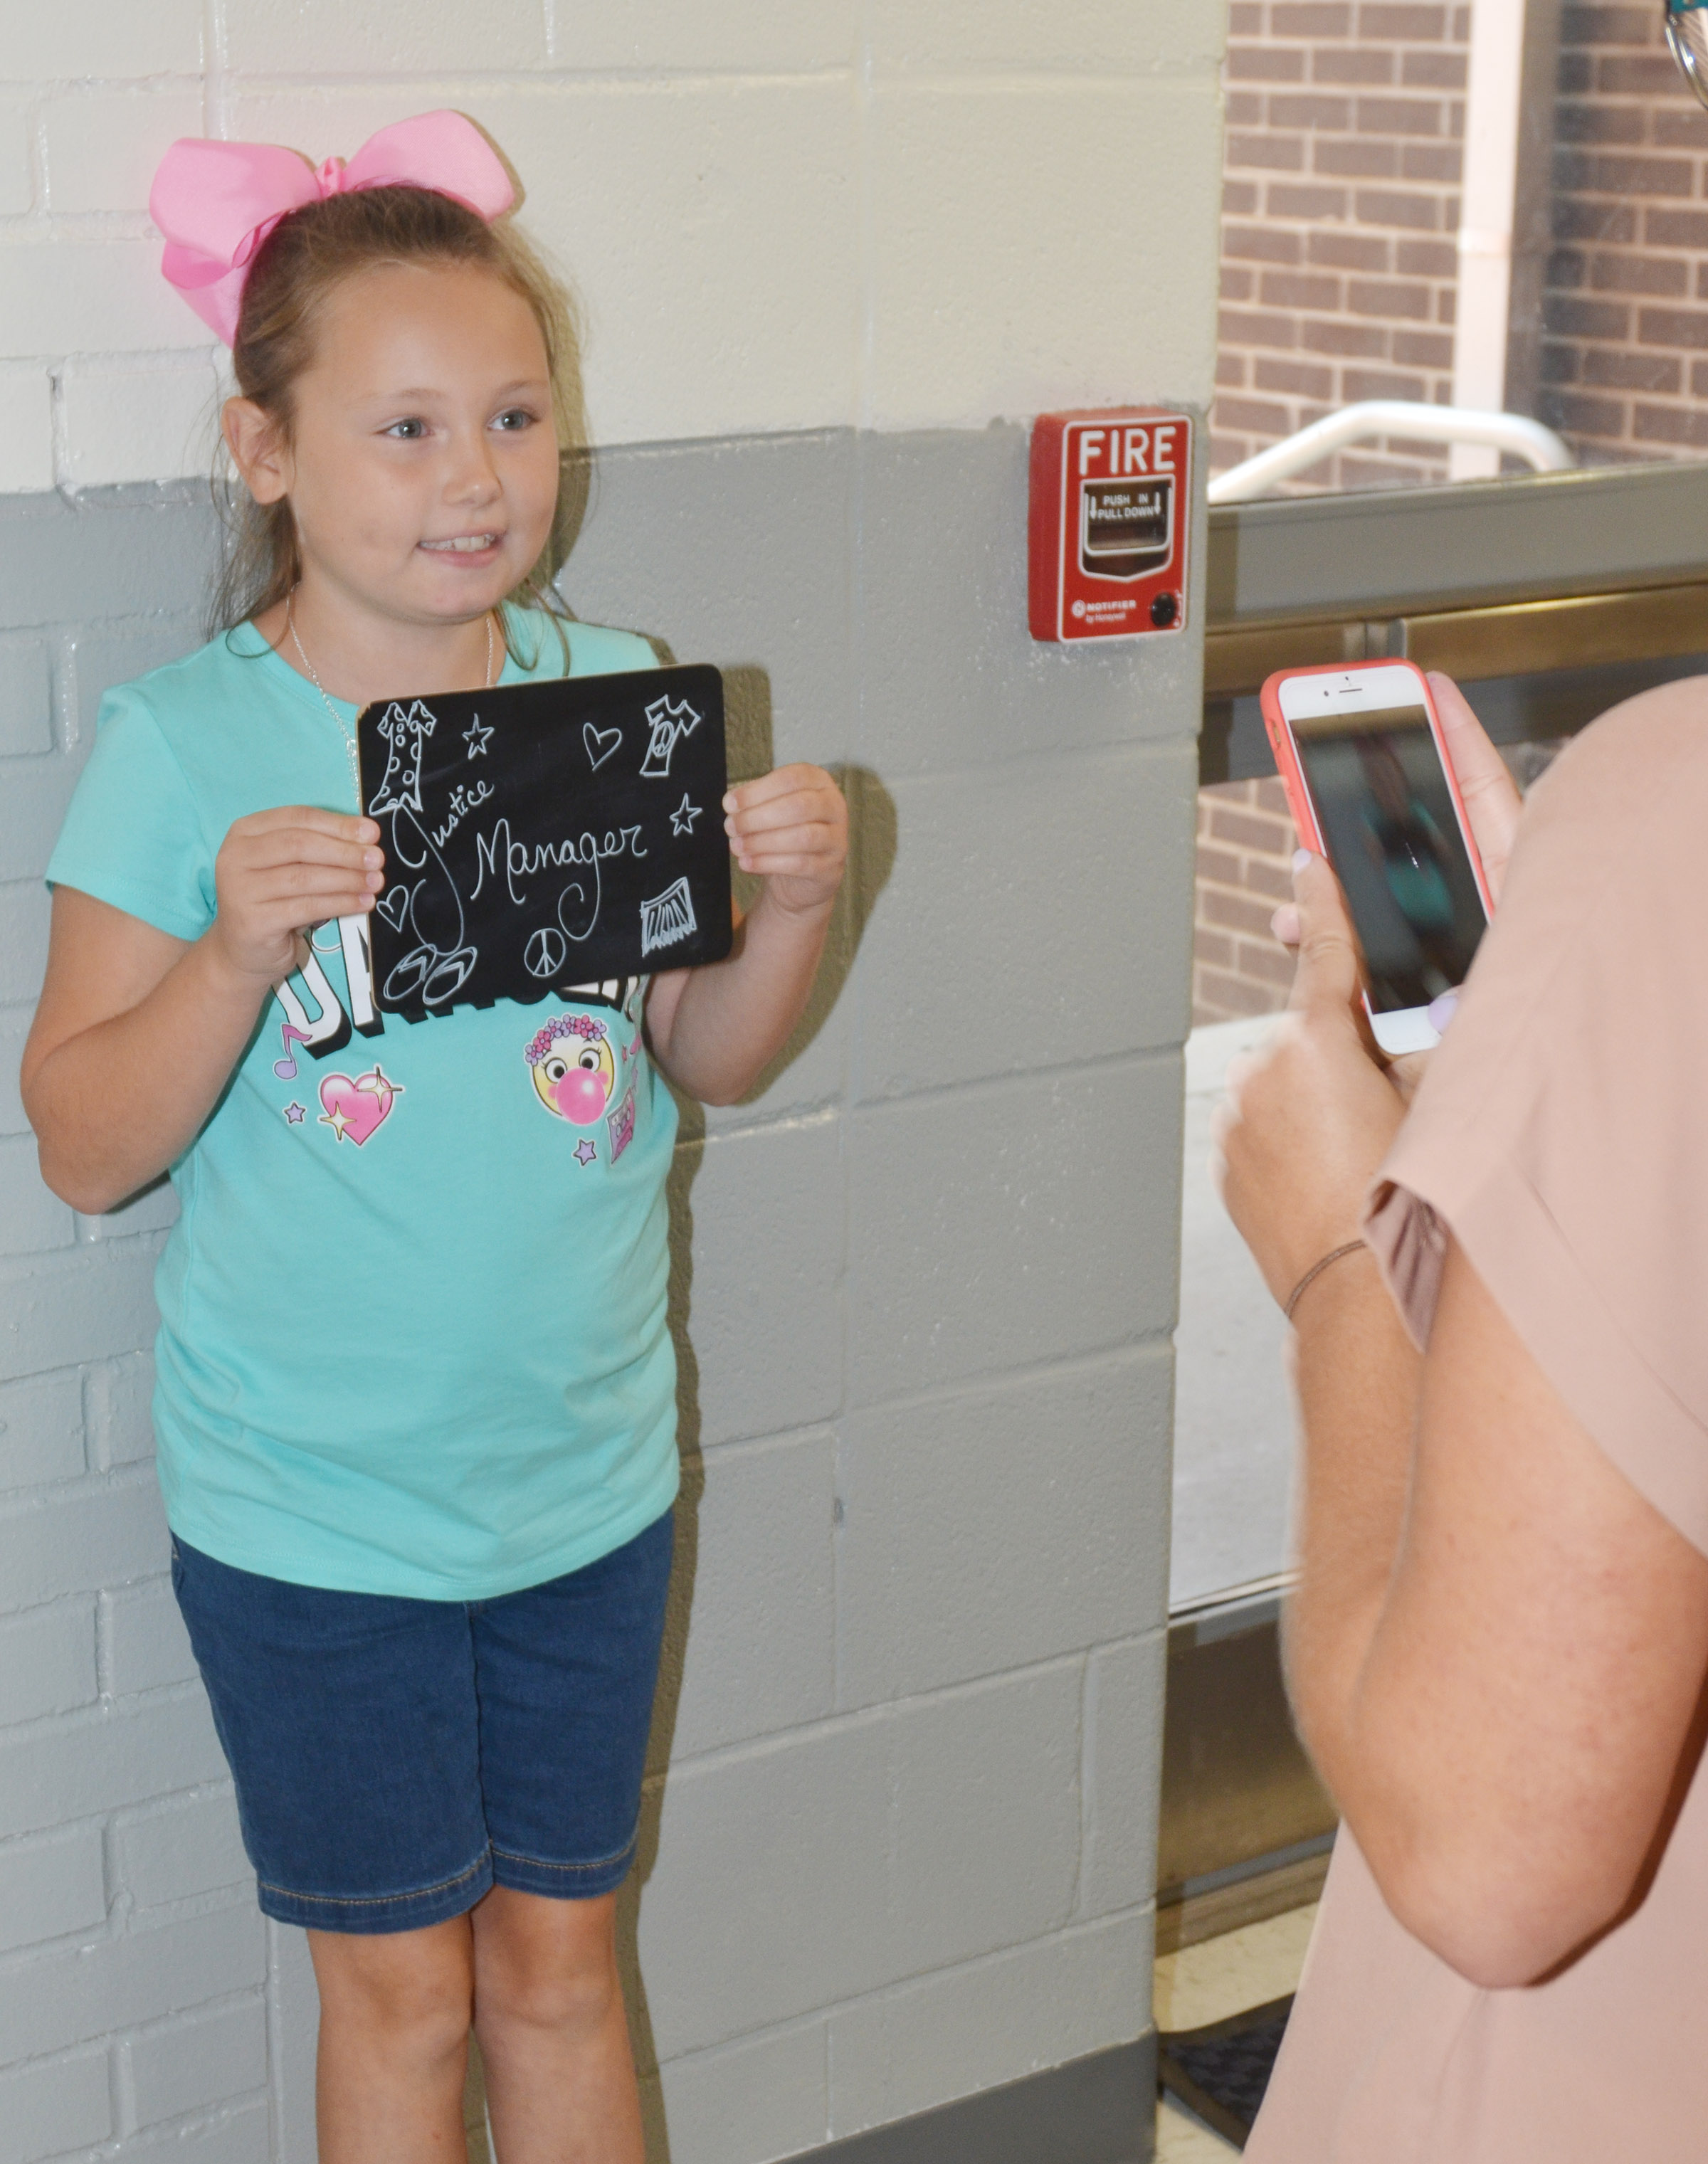 CES third-grader River McFarland, who wants to be a manager at Justice when she gets older, smiles for a photo.